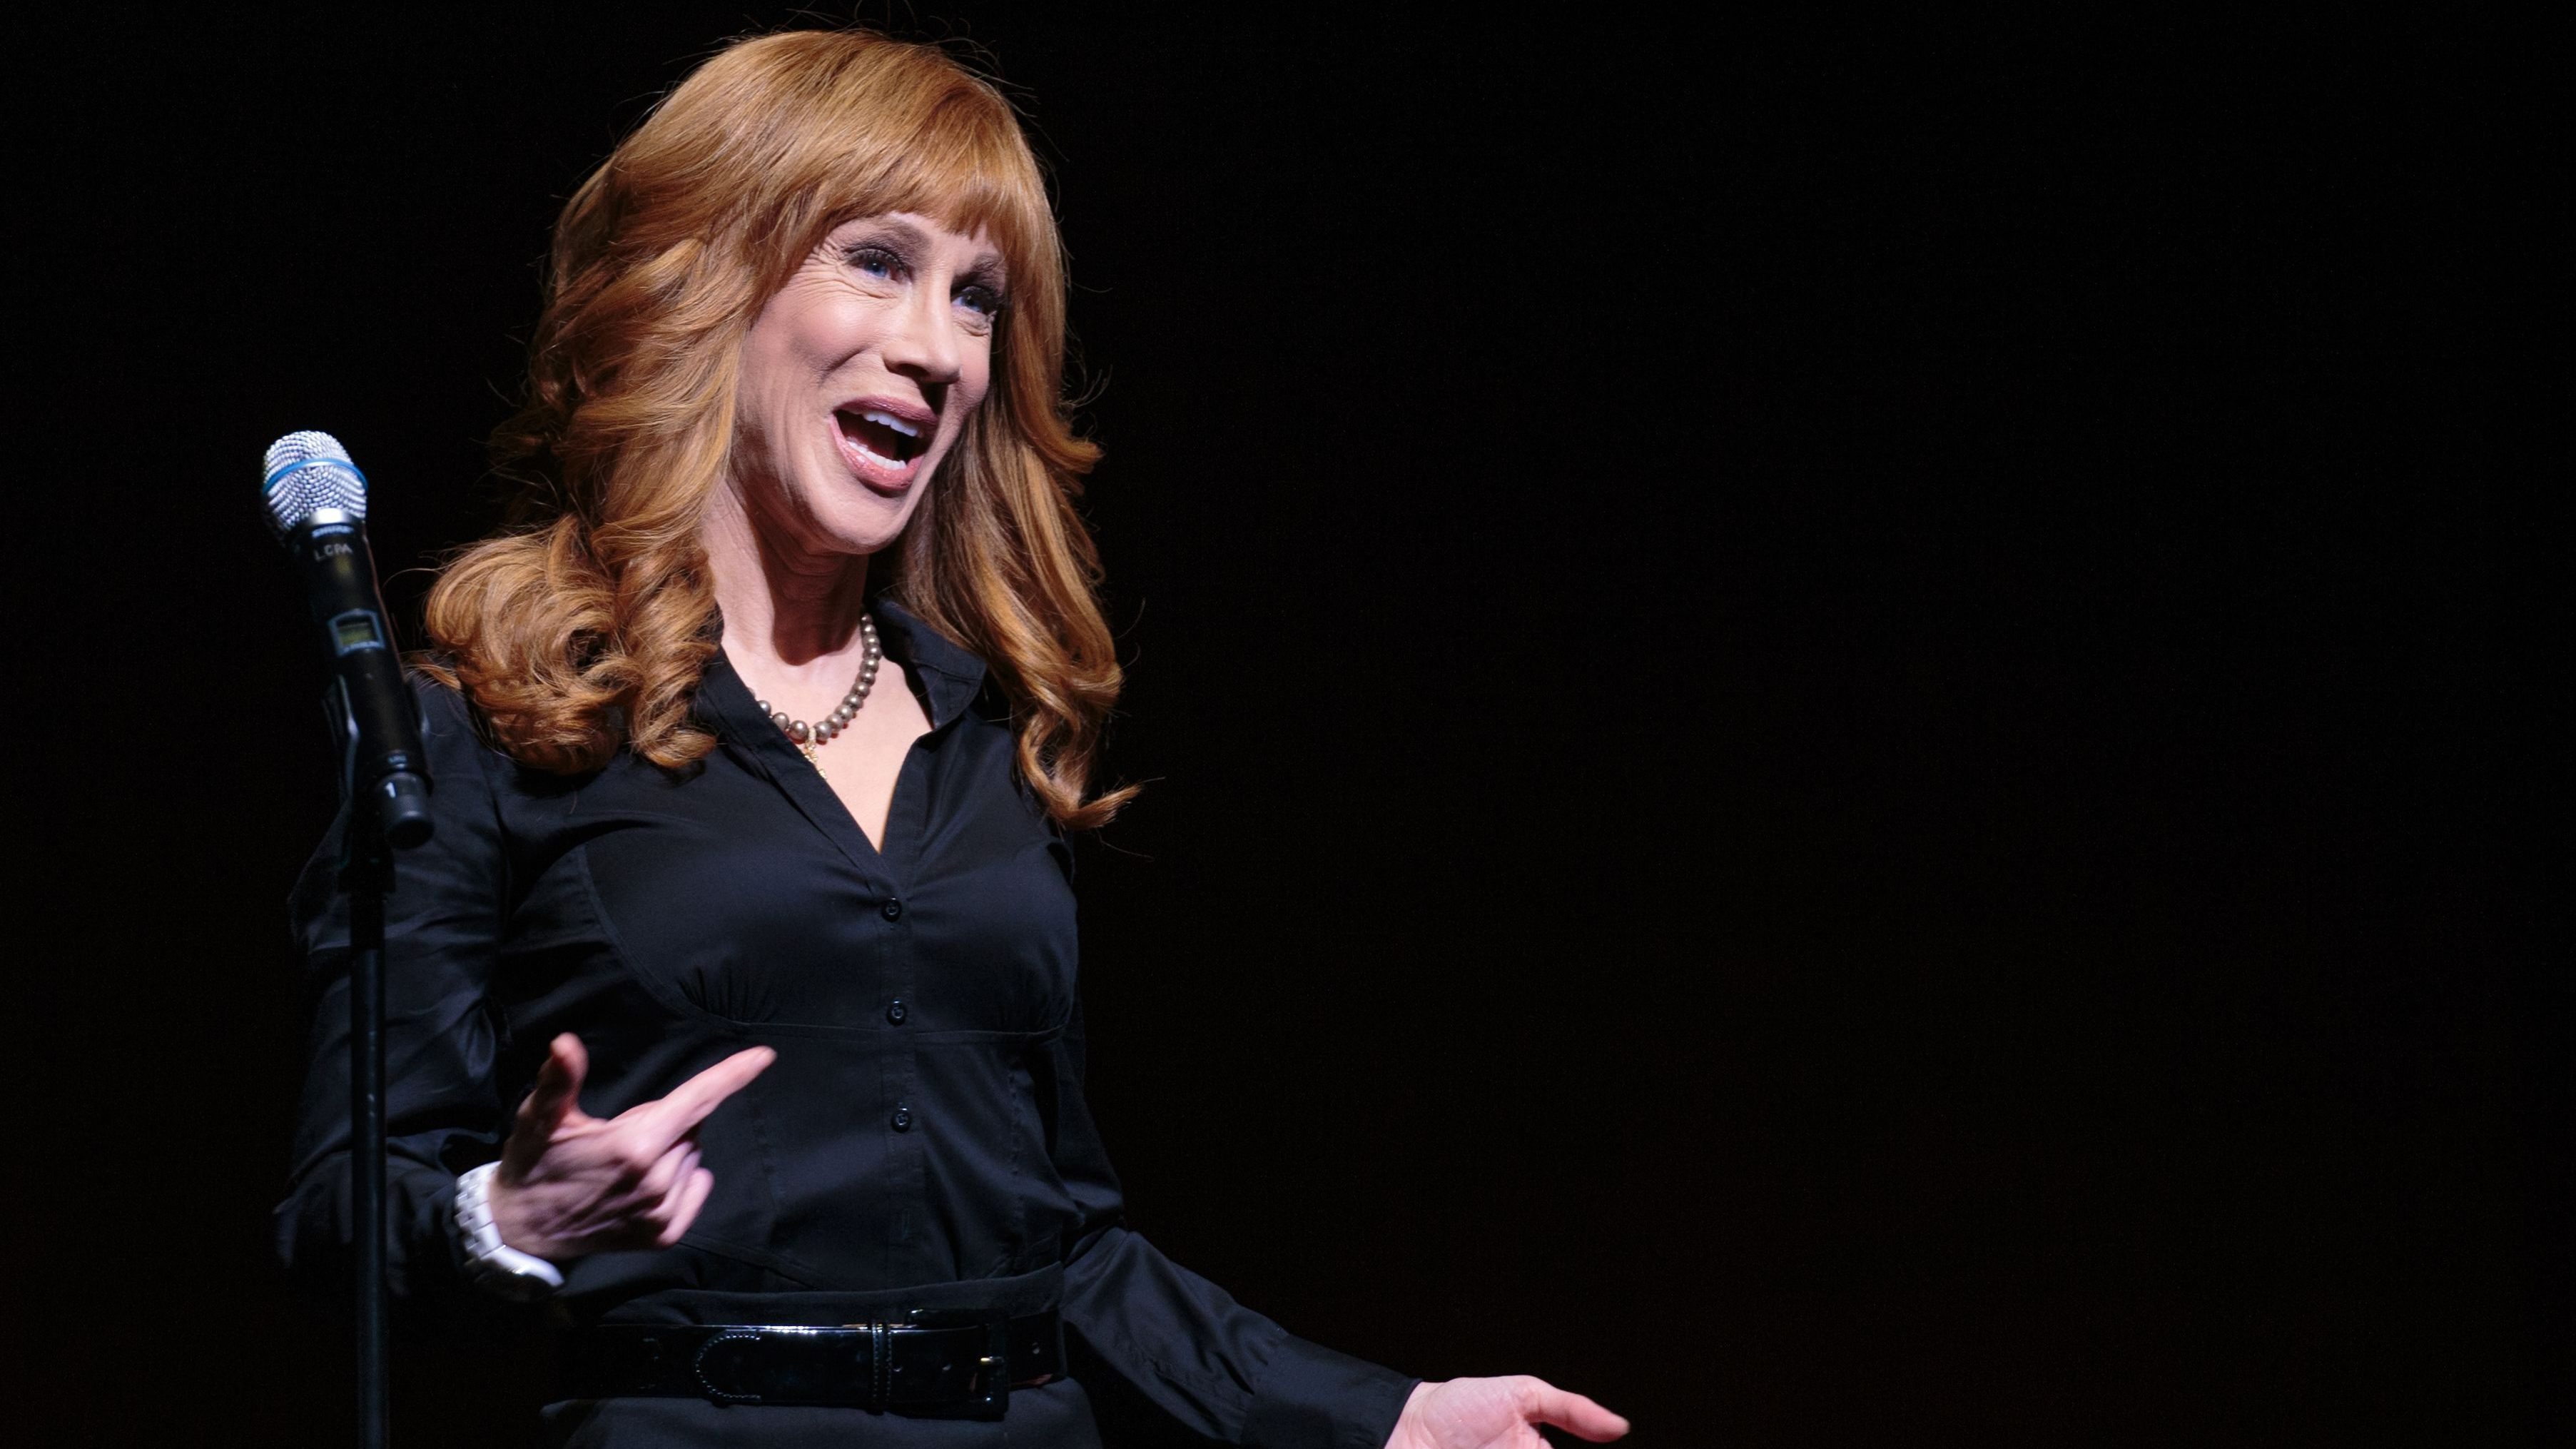 Trump says Kathy Griffin 'should be ashamed of herself'